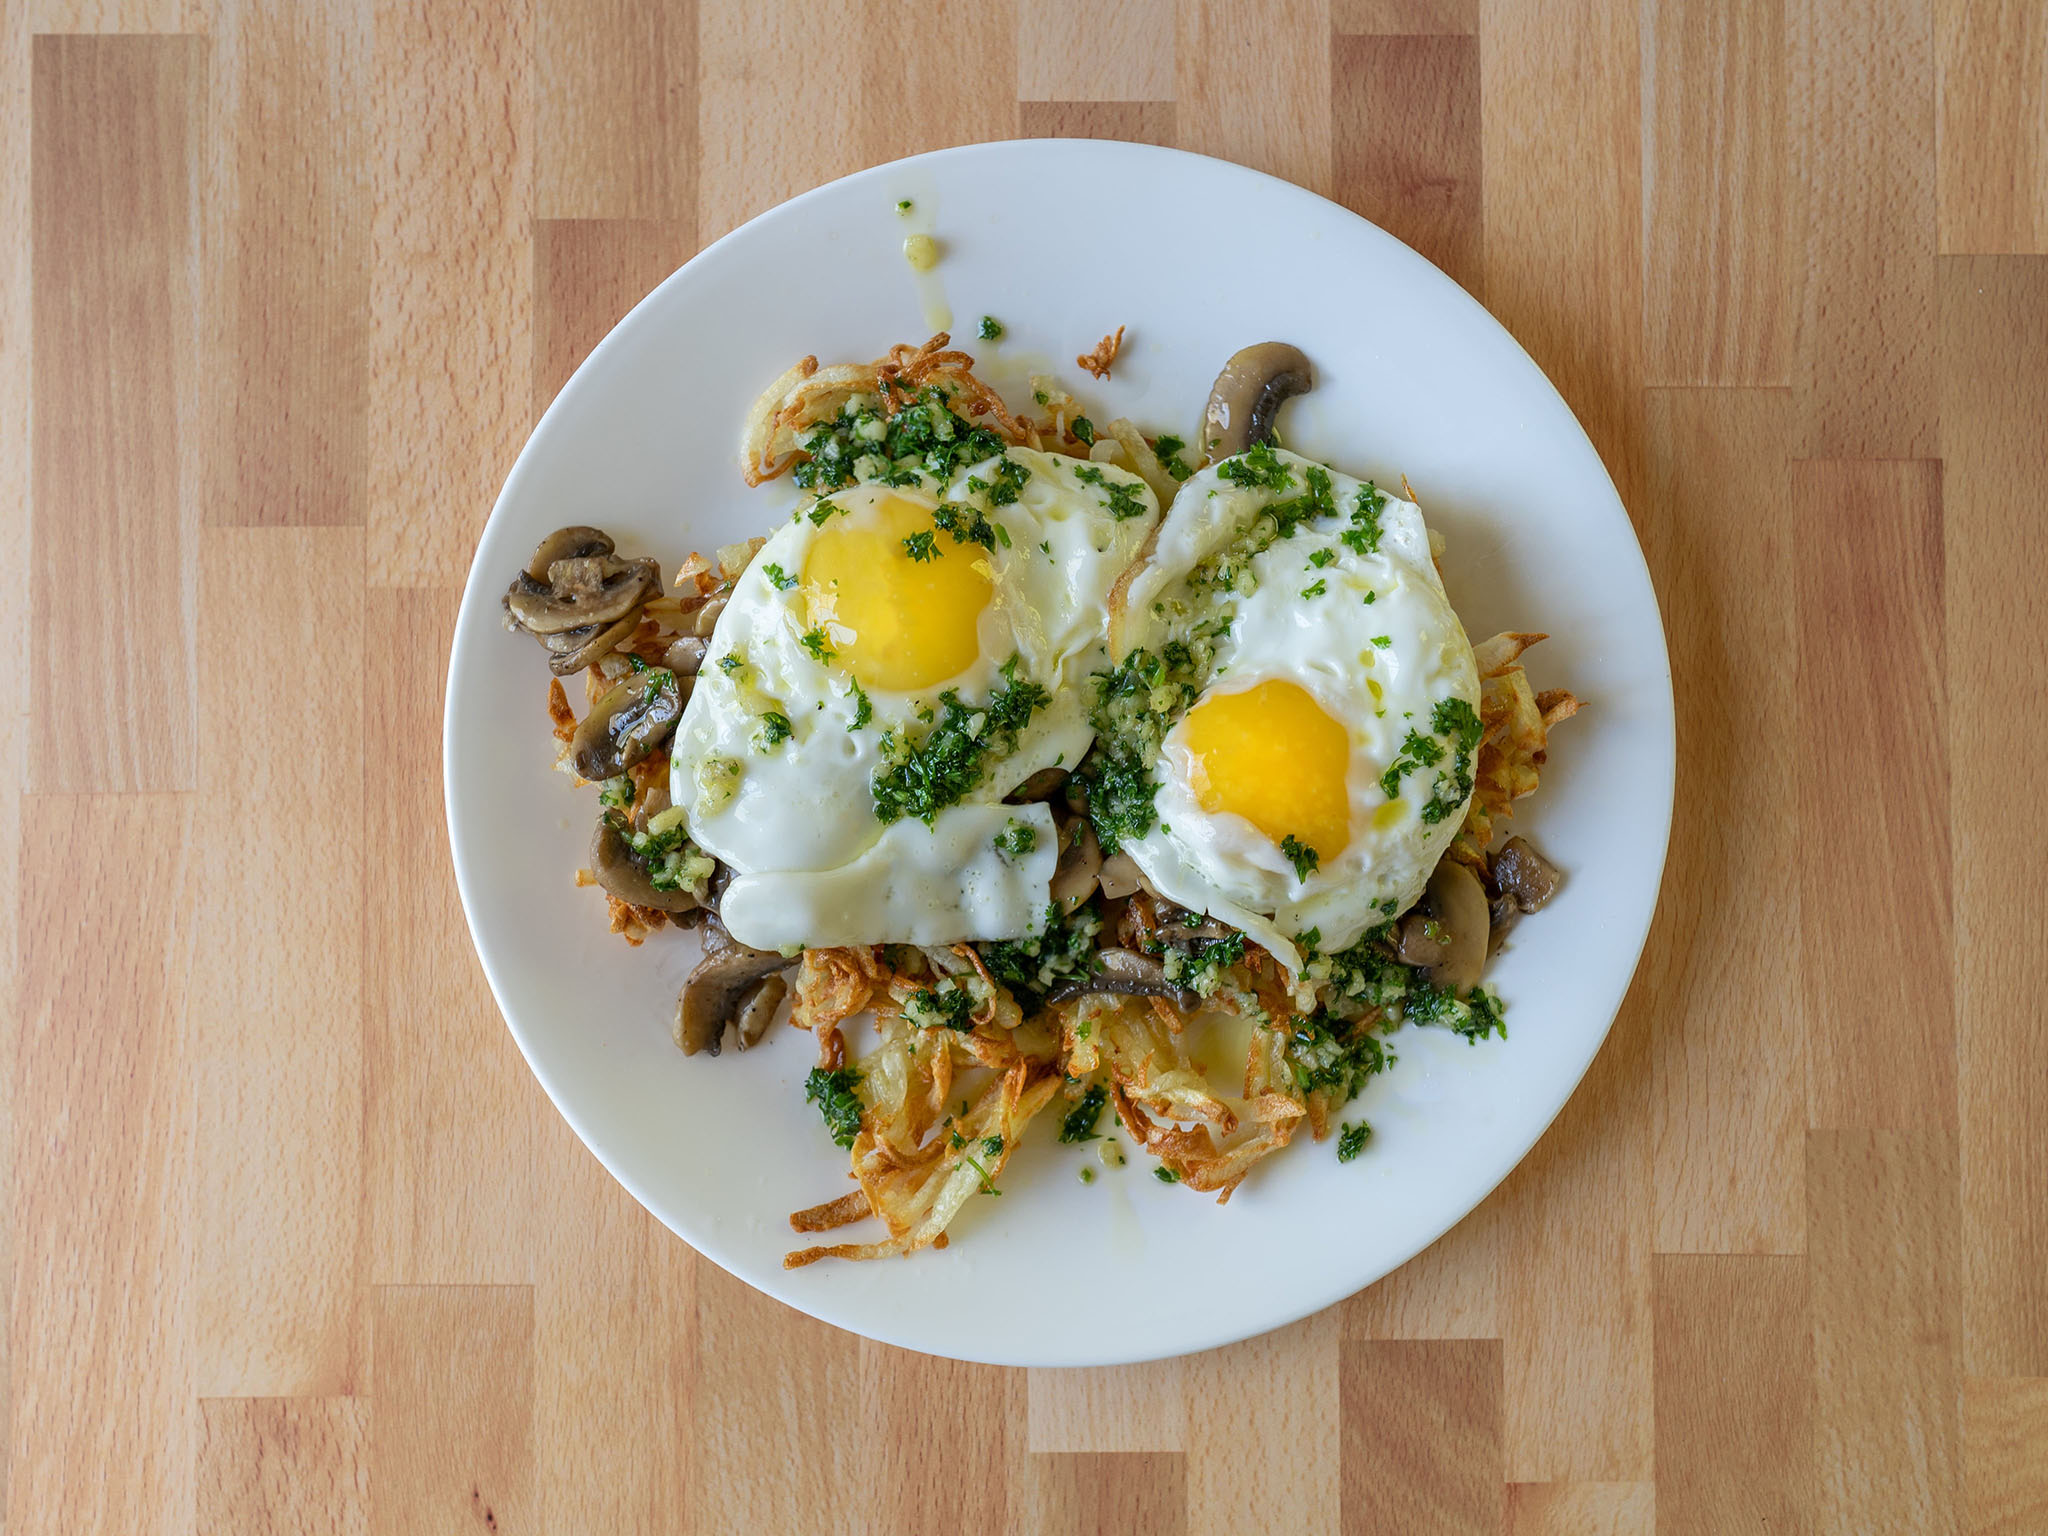 Copper Onion style Mushrooms, Eggs and Potatoes